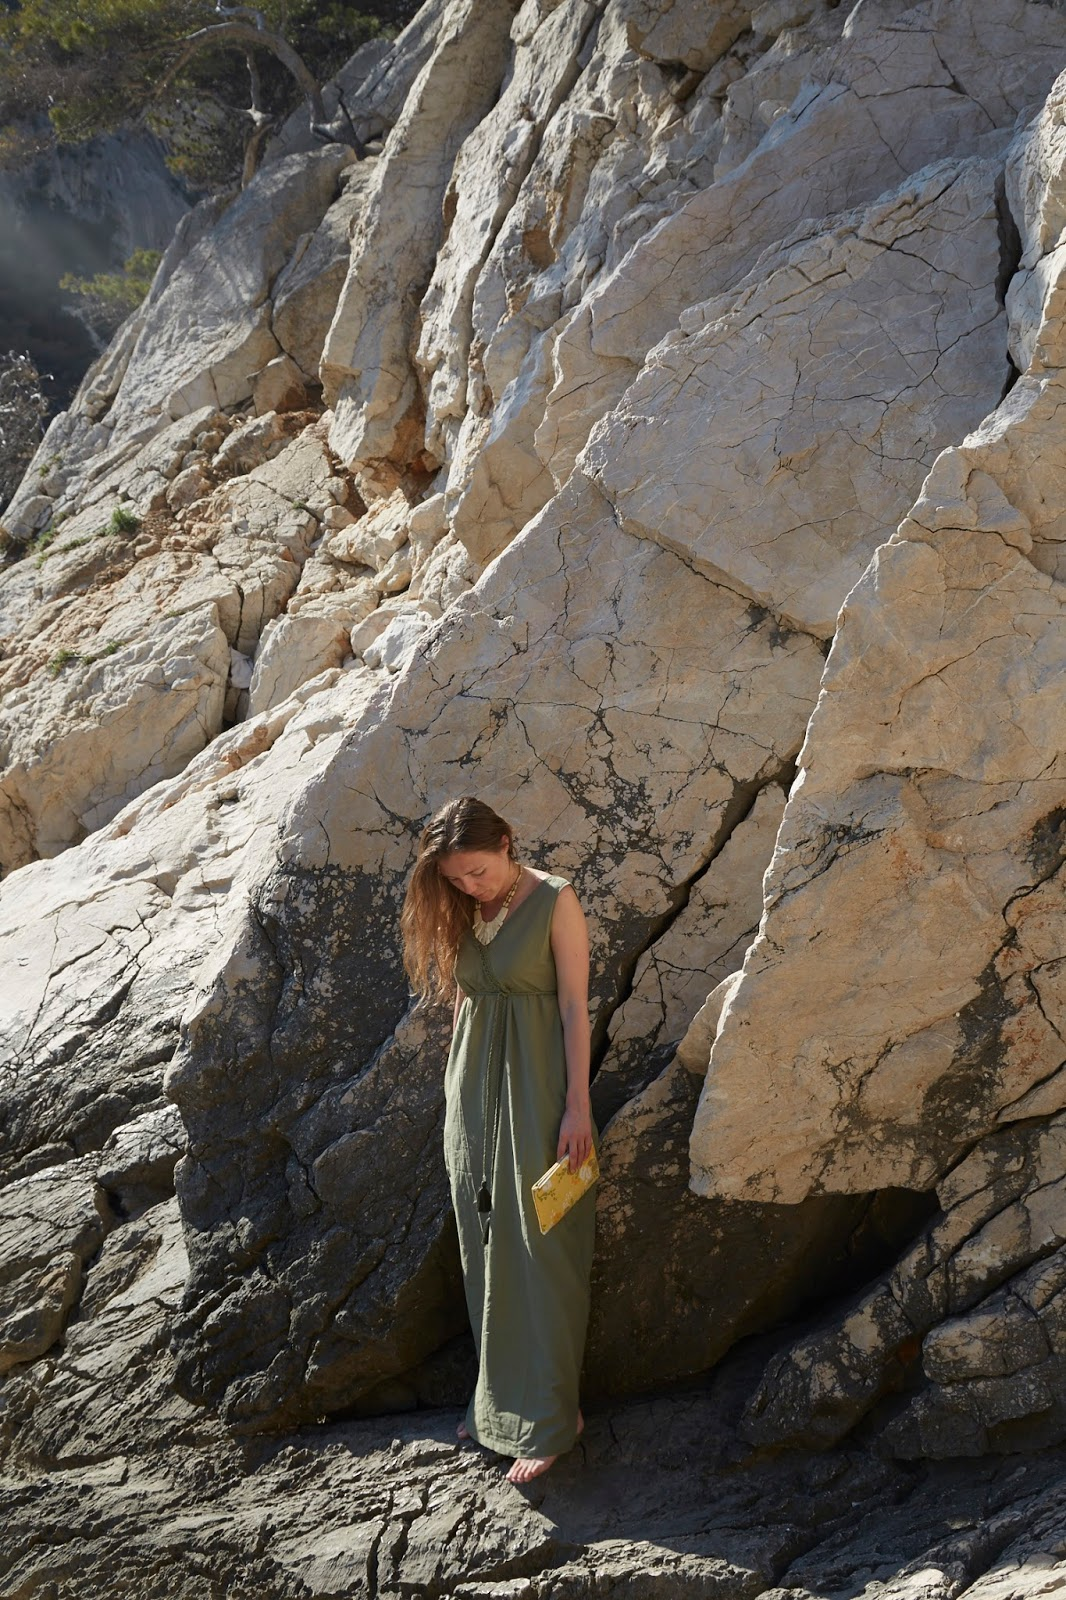 ethical fashion, sustainable fashion, green fashion, conscious fashion, slow fashion, eco fashion blogger, sustainable fashion blogger, green fashion blogger, conscious fashion blogger